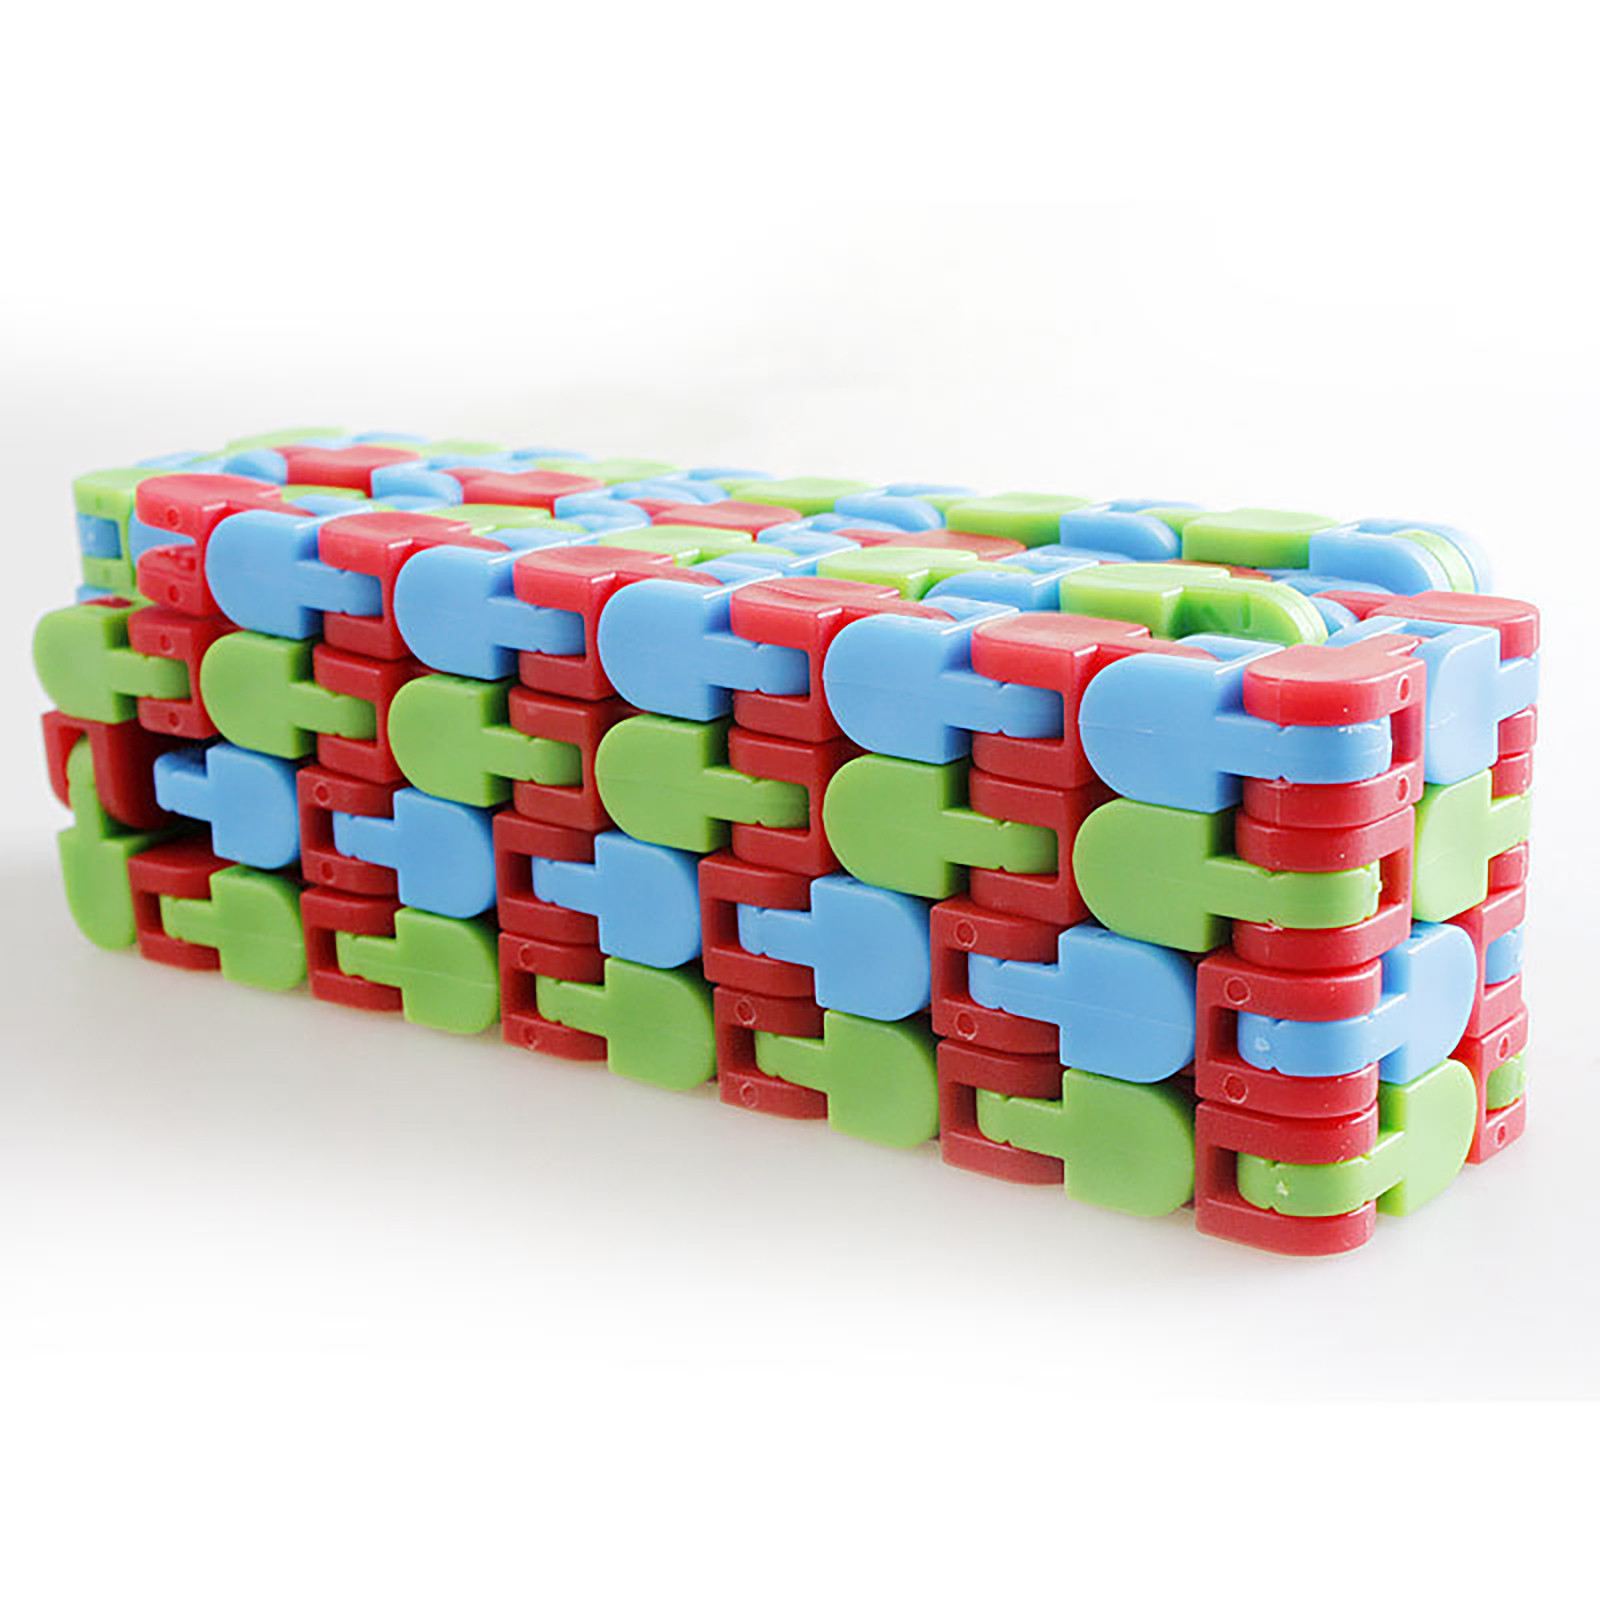 Puzzles Toys Wacky-Tracks Relief Stress Finger-Sensory Snake Fillers Snap Click And img4